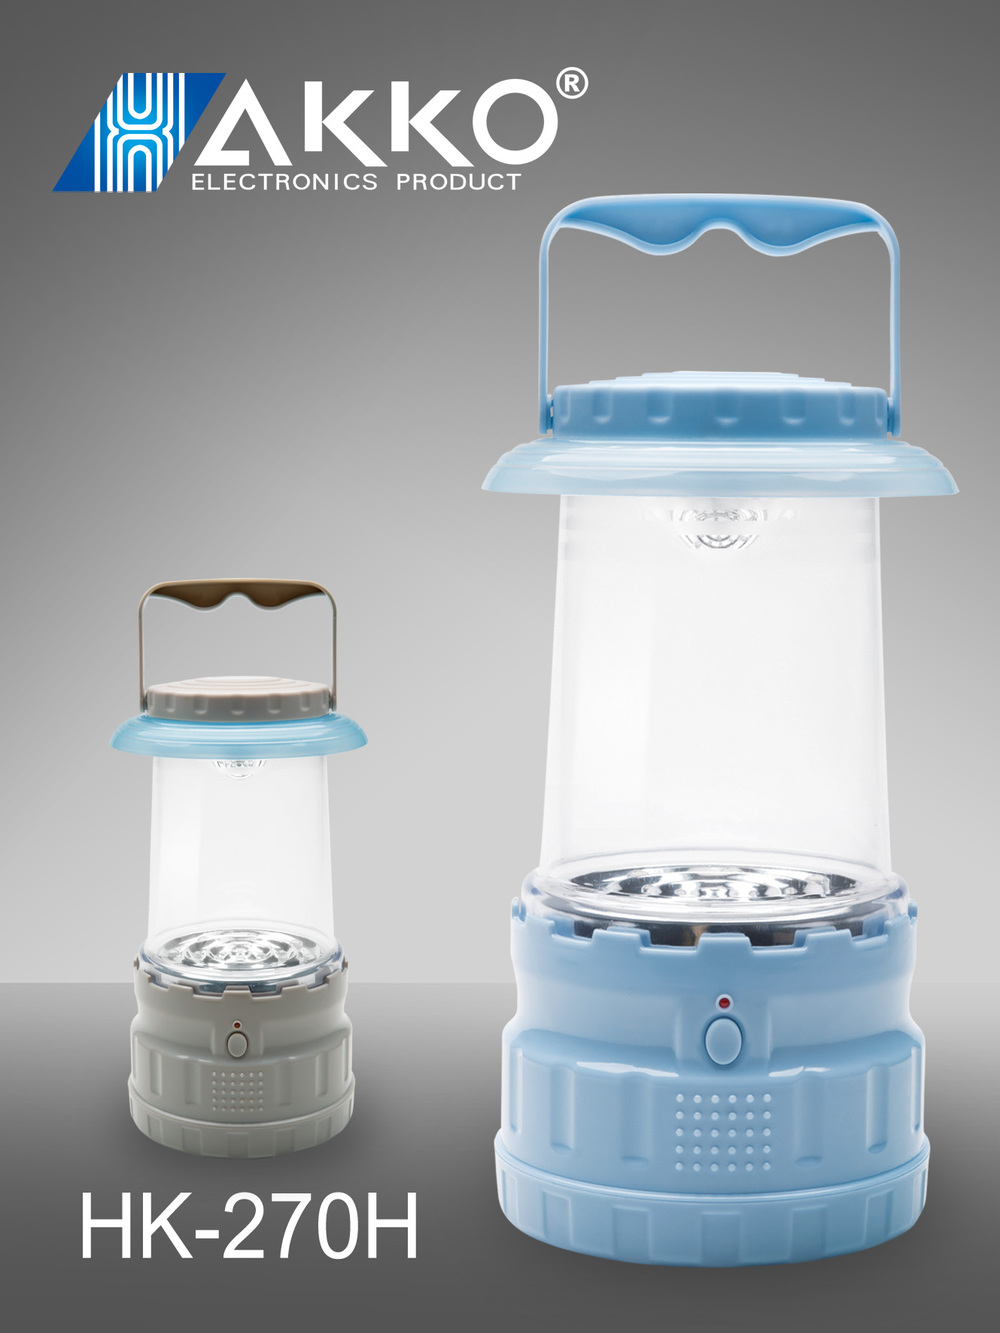 LED Rechargeable Emergency Light for Camping